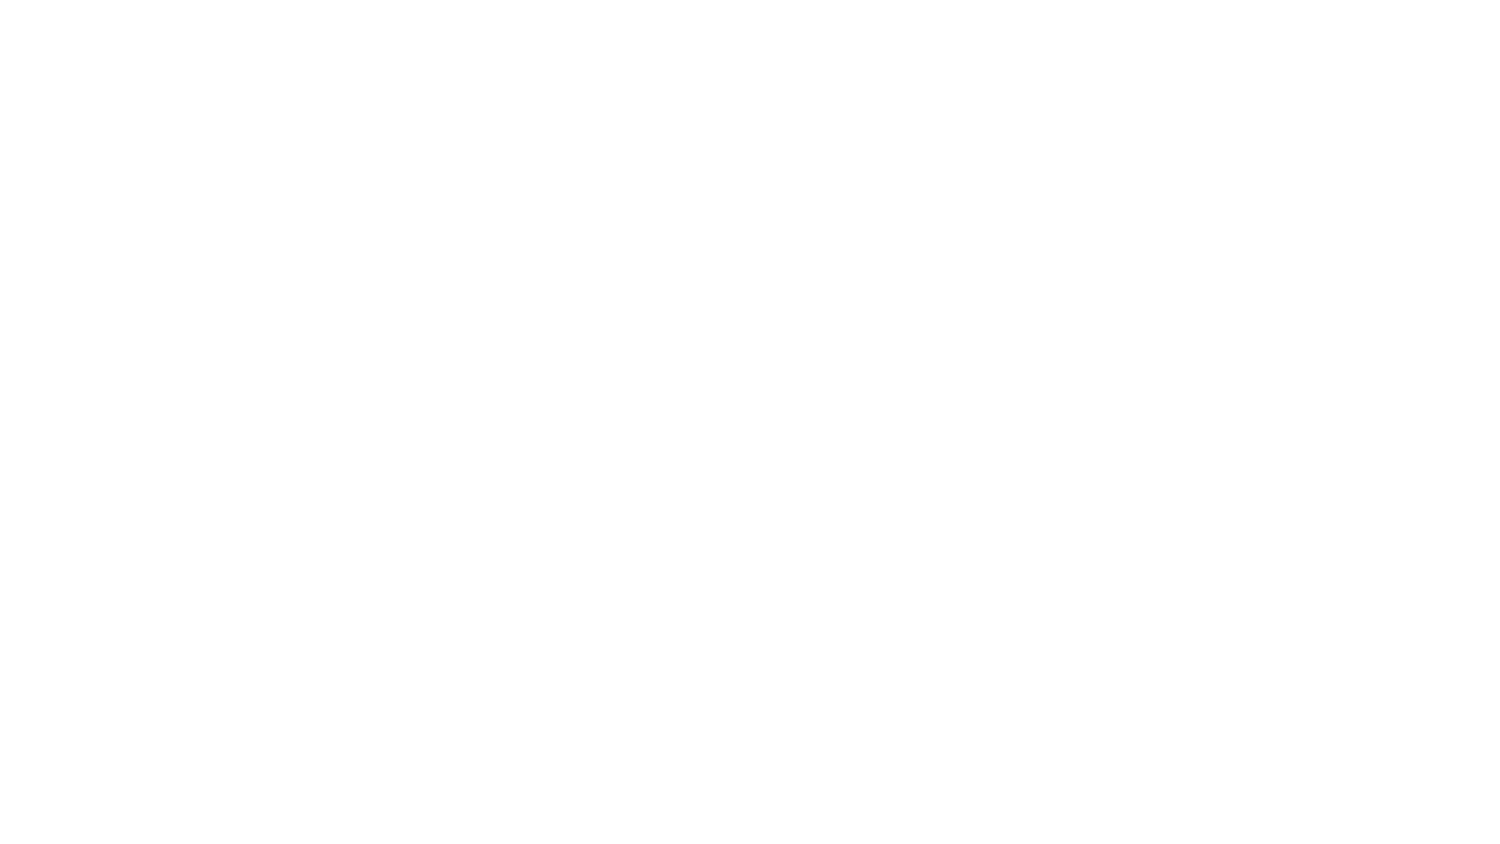 The Wig Hanger